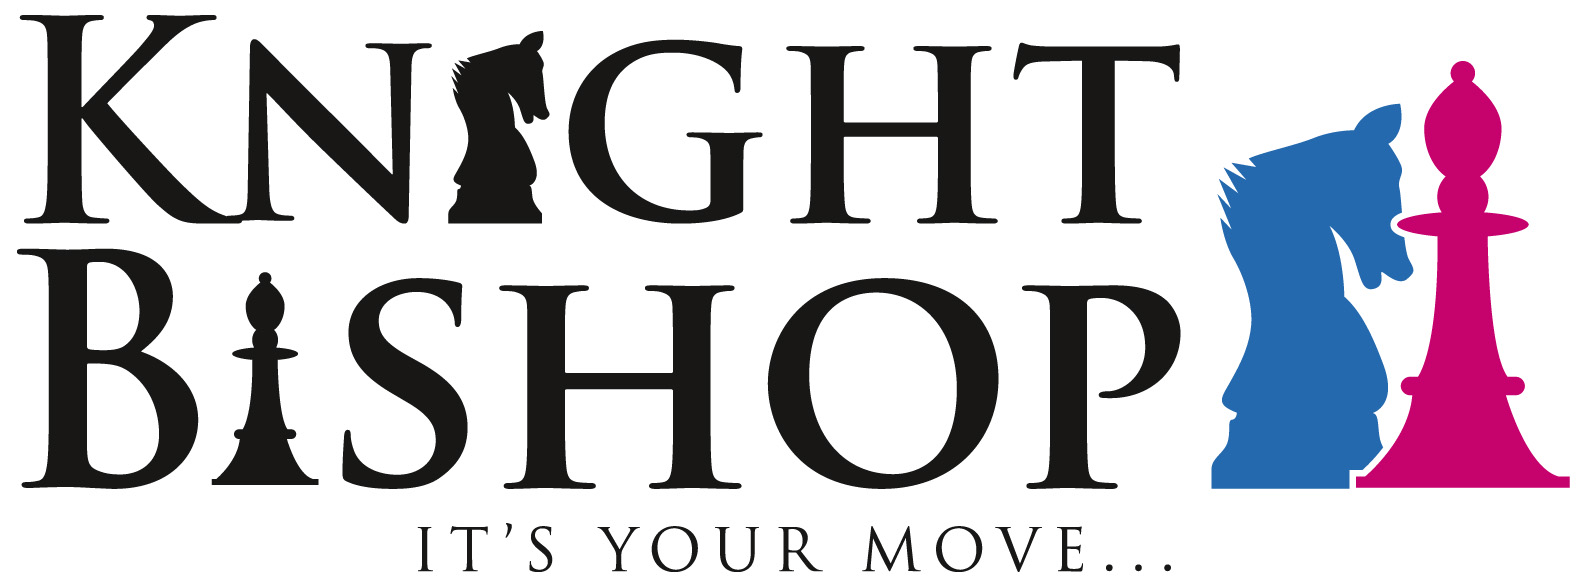 Knight Bishop Estate Agents London